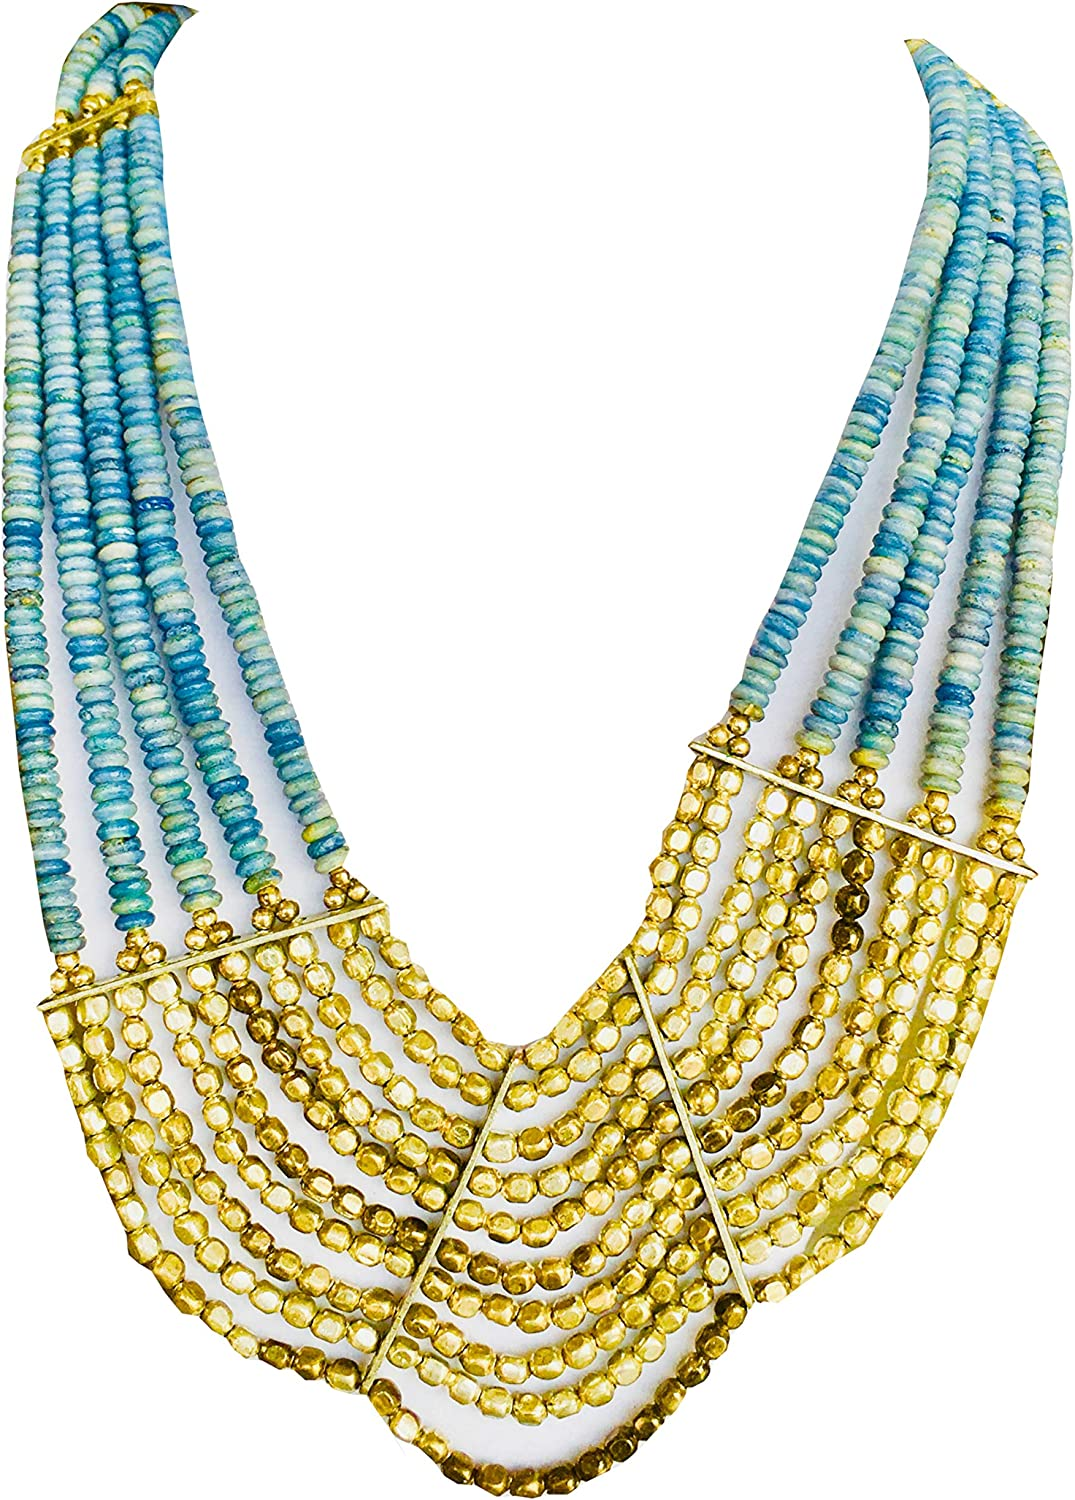 Elegant Multi Strand Necklace Light Blue Beads & Fine Art - Comes With Gift Box